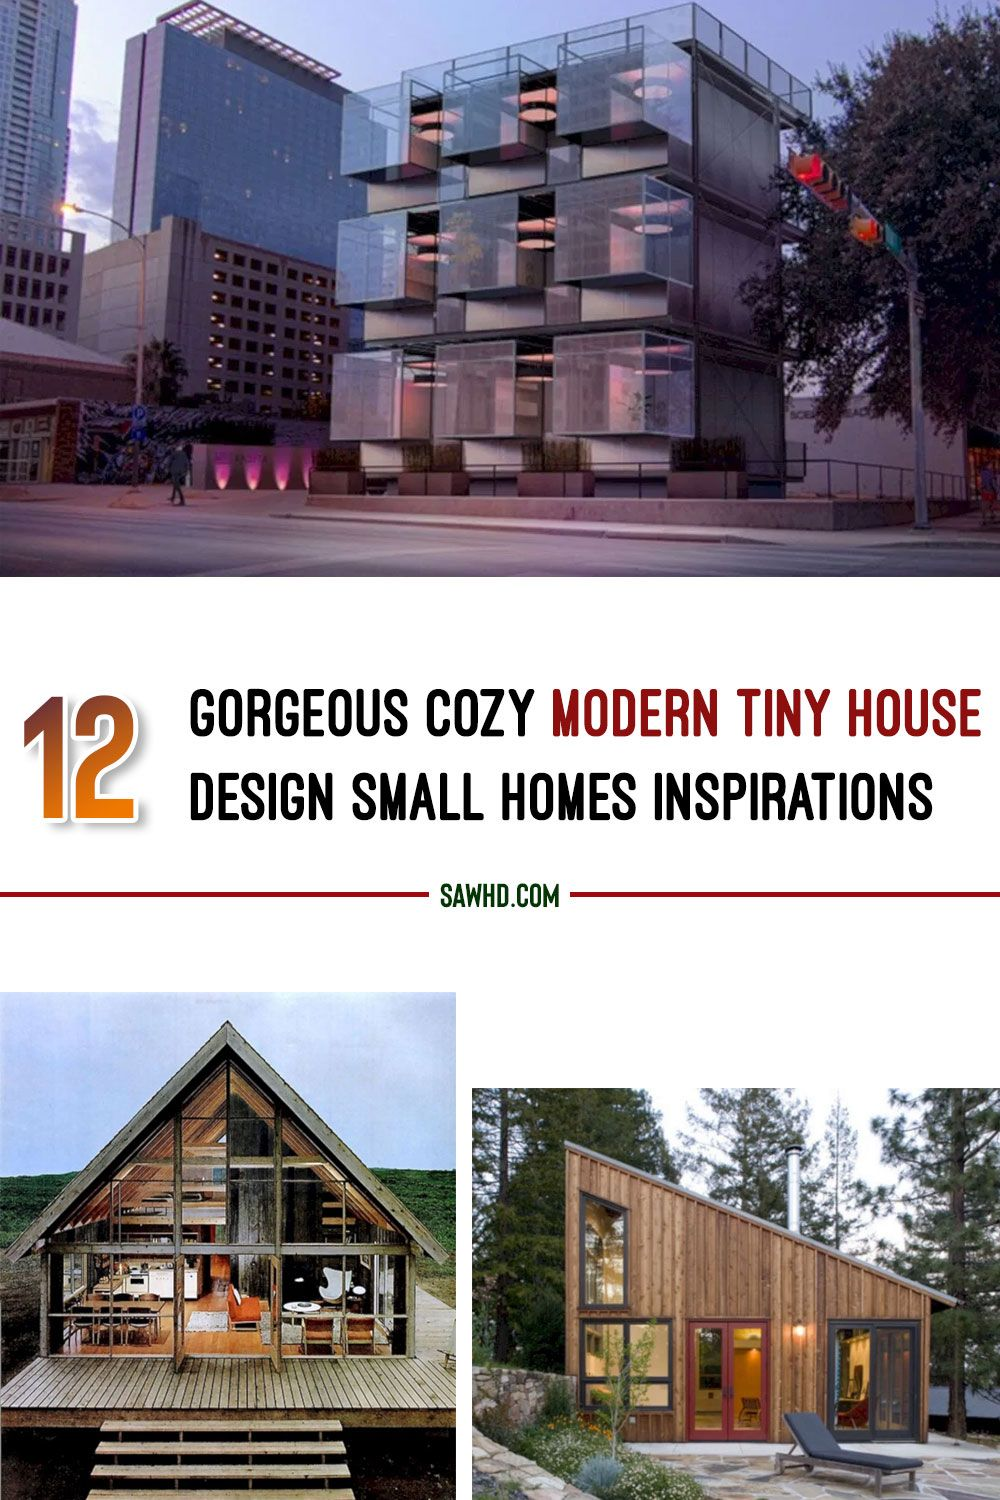 12 Gorgeous Cozy Modern Tiny House Design Small Homes Inspirations In 2020 Tiny House Design Modern Tiny House Tiny House